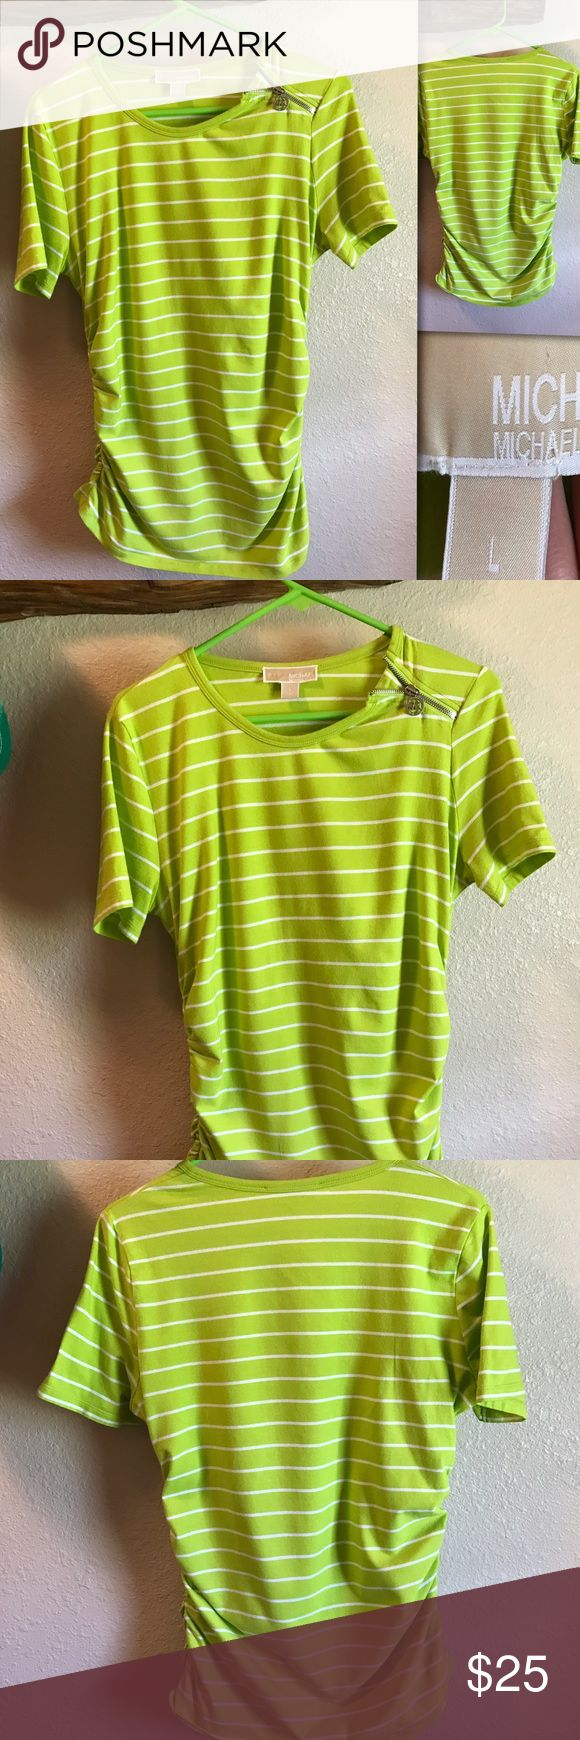 Michael Kors Lime Green Blouse. Size L Michael Kors  Lime Green & white striped shirt with Zipper accent on the left shoulder.  Elastic gathering on the sides at the bottom. Slightly worn still in great condition. Size L Michael Kors Tops Blouses